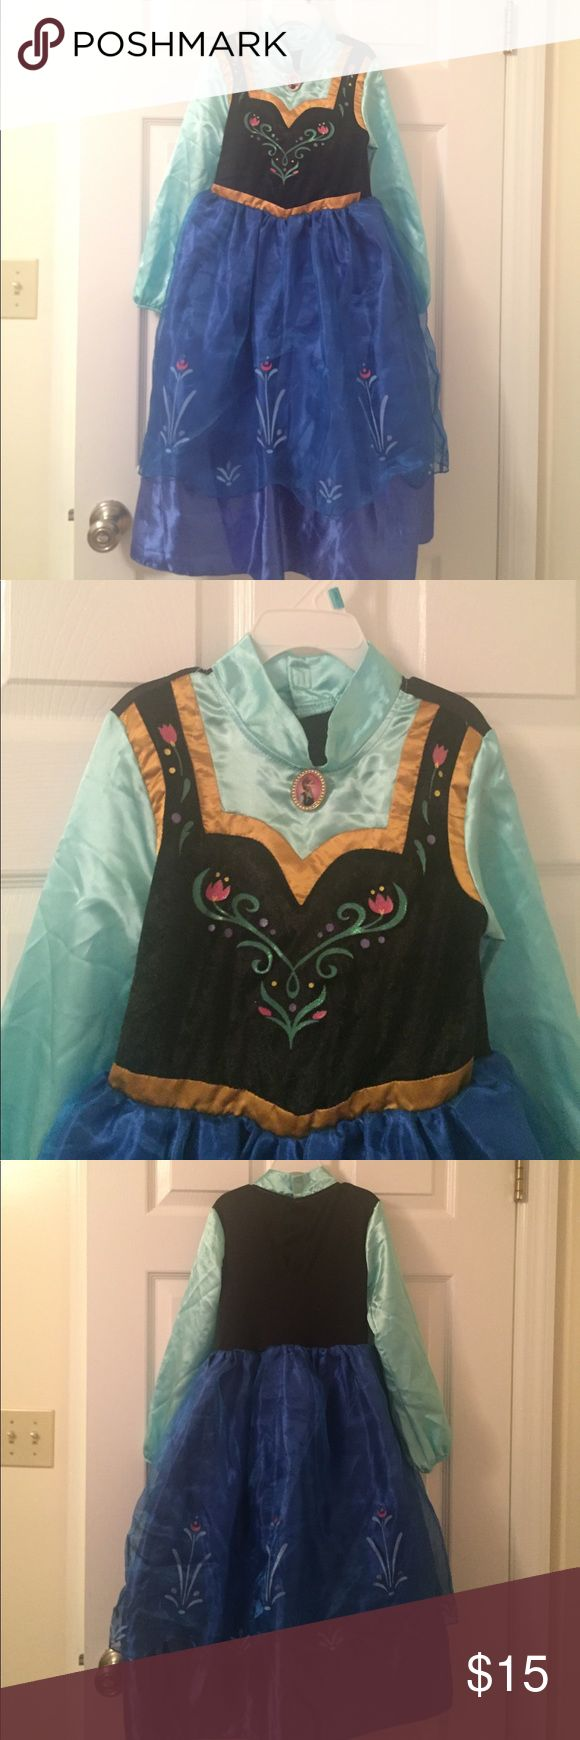 Girls Costume Disney's Frozen Ana Costume. Size 5/6. Good condition. Worn twice. Costumes Halloween